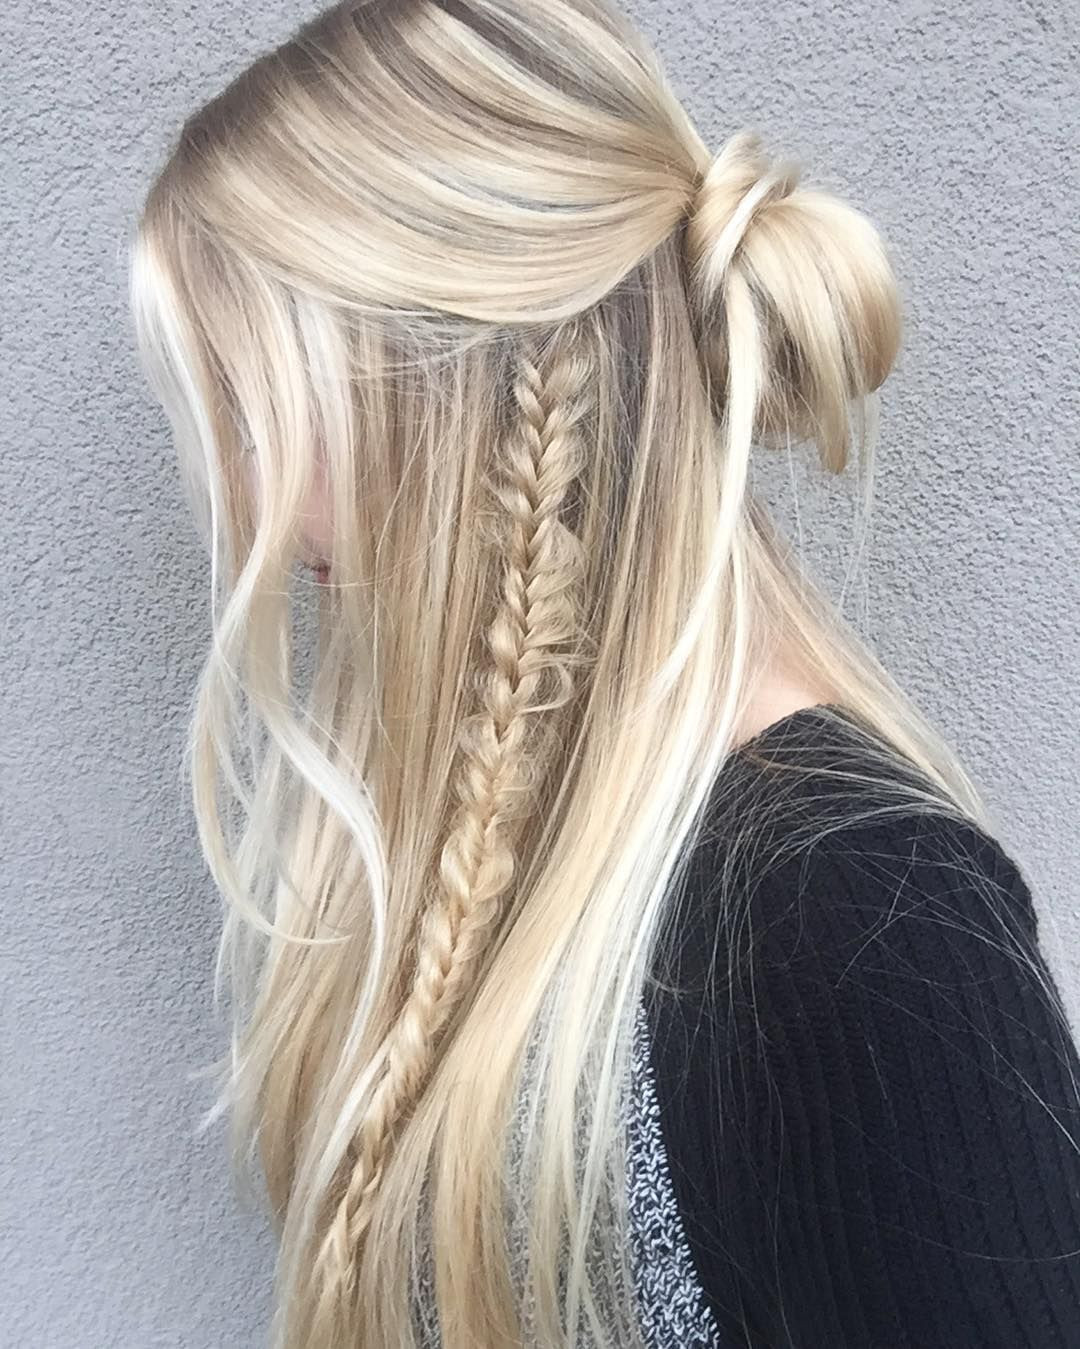 Best ideas about Cute Half Up Half Down Hairstyles . Save or Pin 60 Cute Easy Half Up Half Down Hairstyles For Wedding Now.